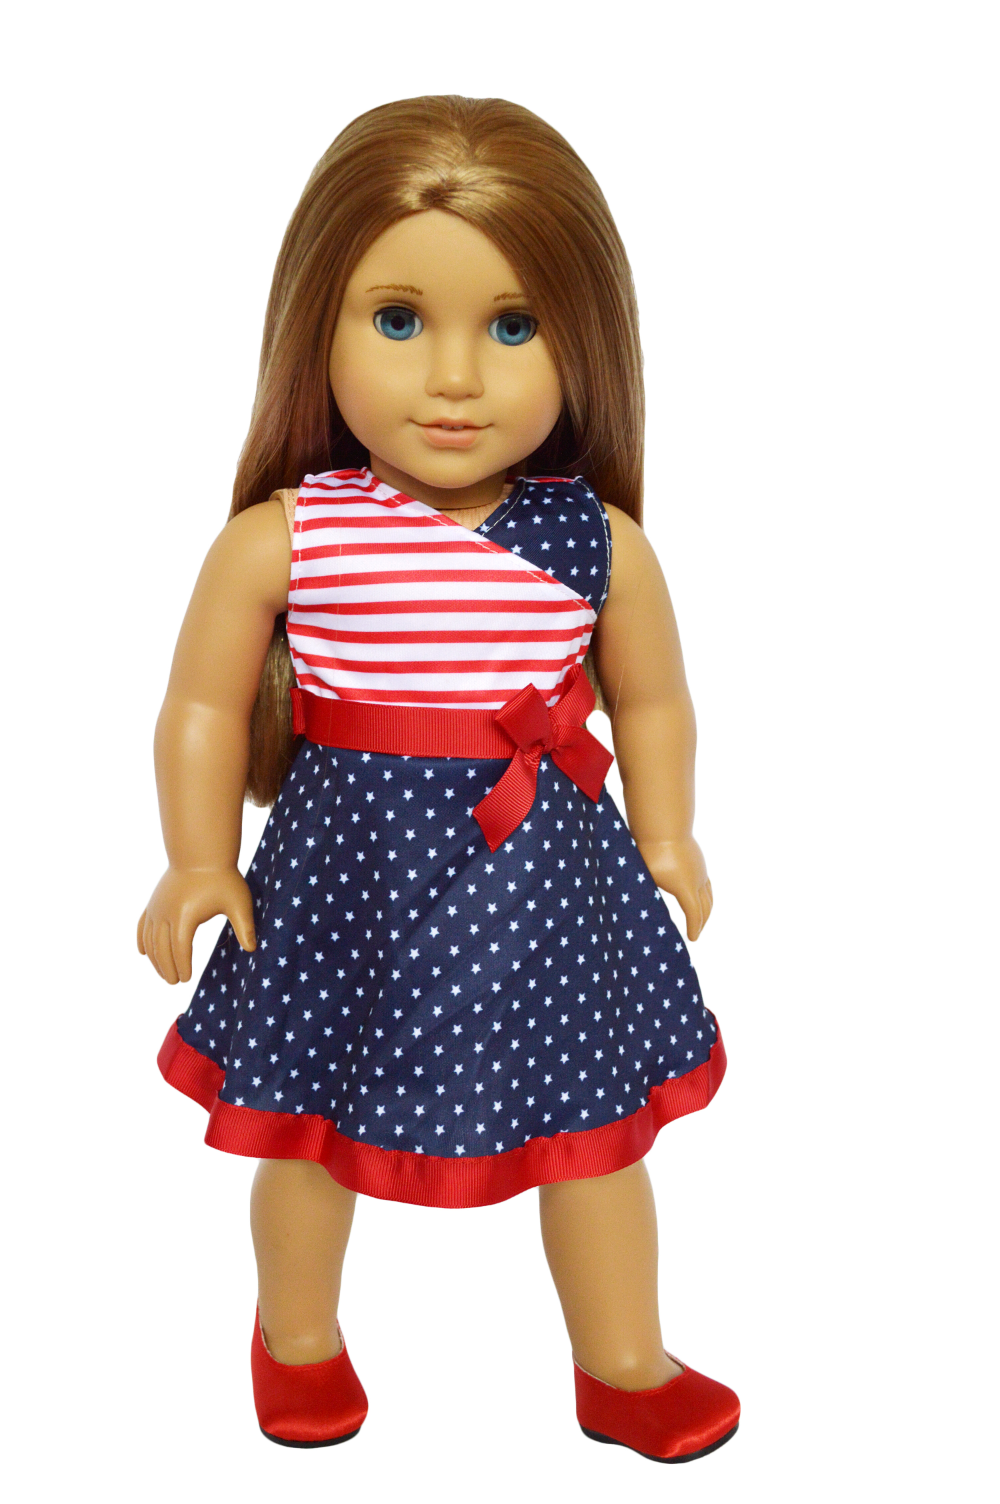 My Brittany's American Pride Dress for American Girl Dolls/18 inch doll clothes/My Dolls Life - Walmart.com